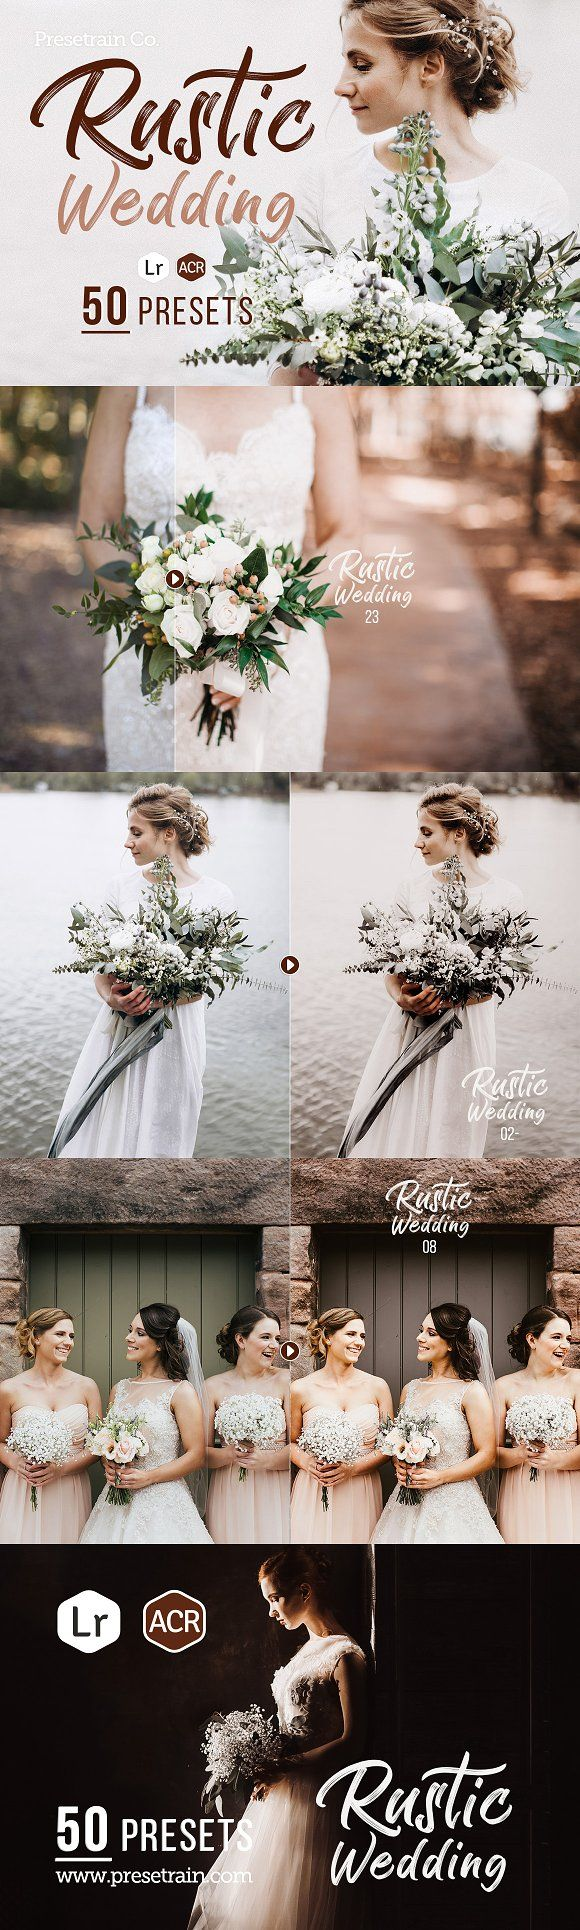 50 Rustic Wedding Adobe Lightroom presets with soft, rosy, vintage style. Perfect for spring and autumn weddings.